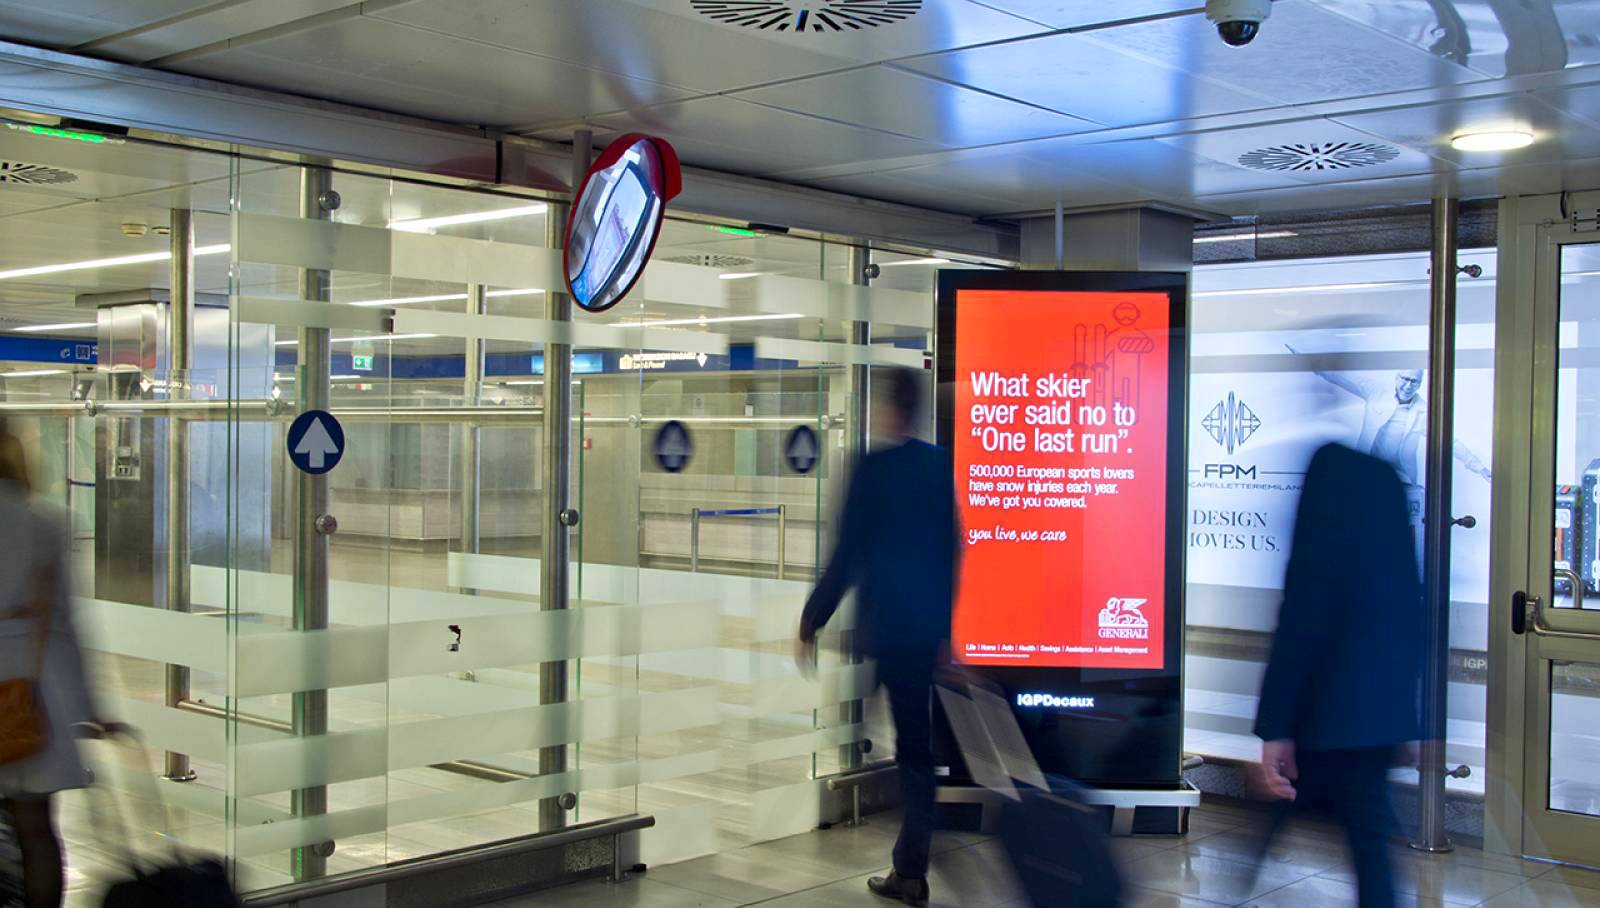 Dooh Advertising at Linate airport digital network IGPDecaux for Generali